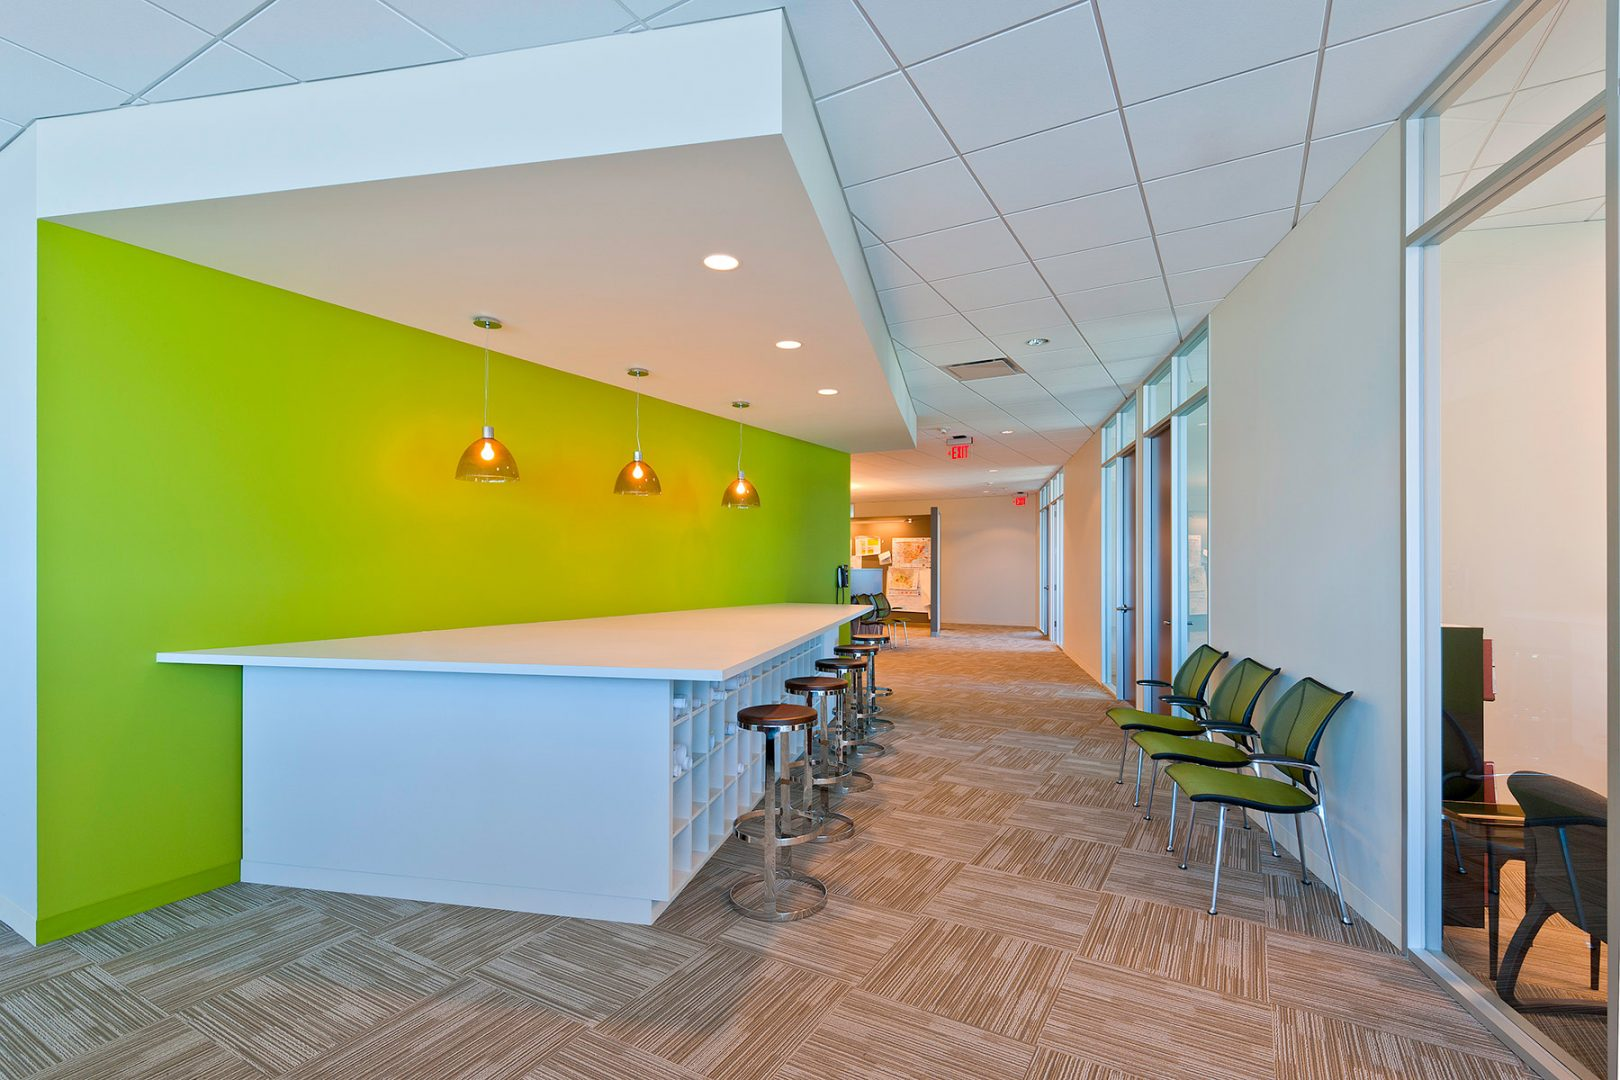 Workplace Office Interior Design BEUSA Energy The Woodlands Colorful Wall Workroom